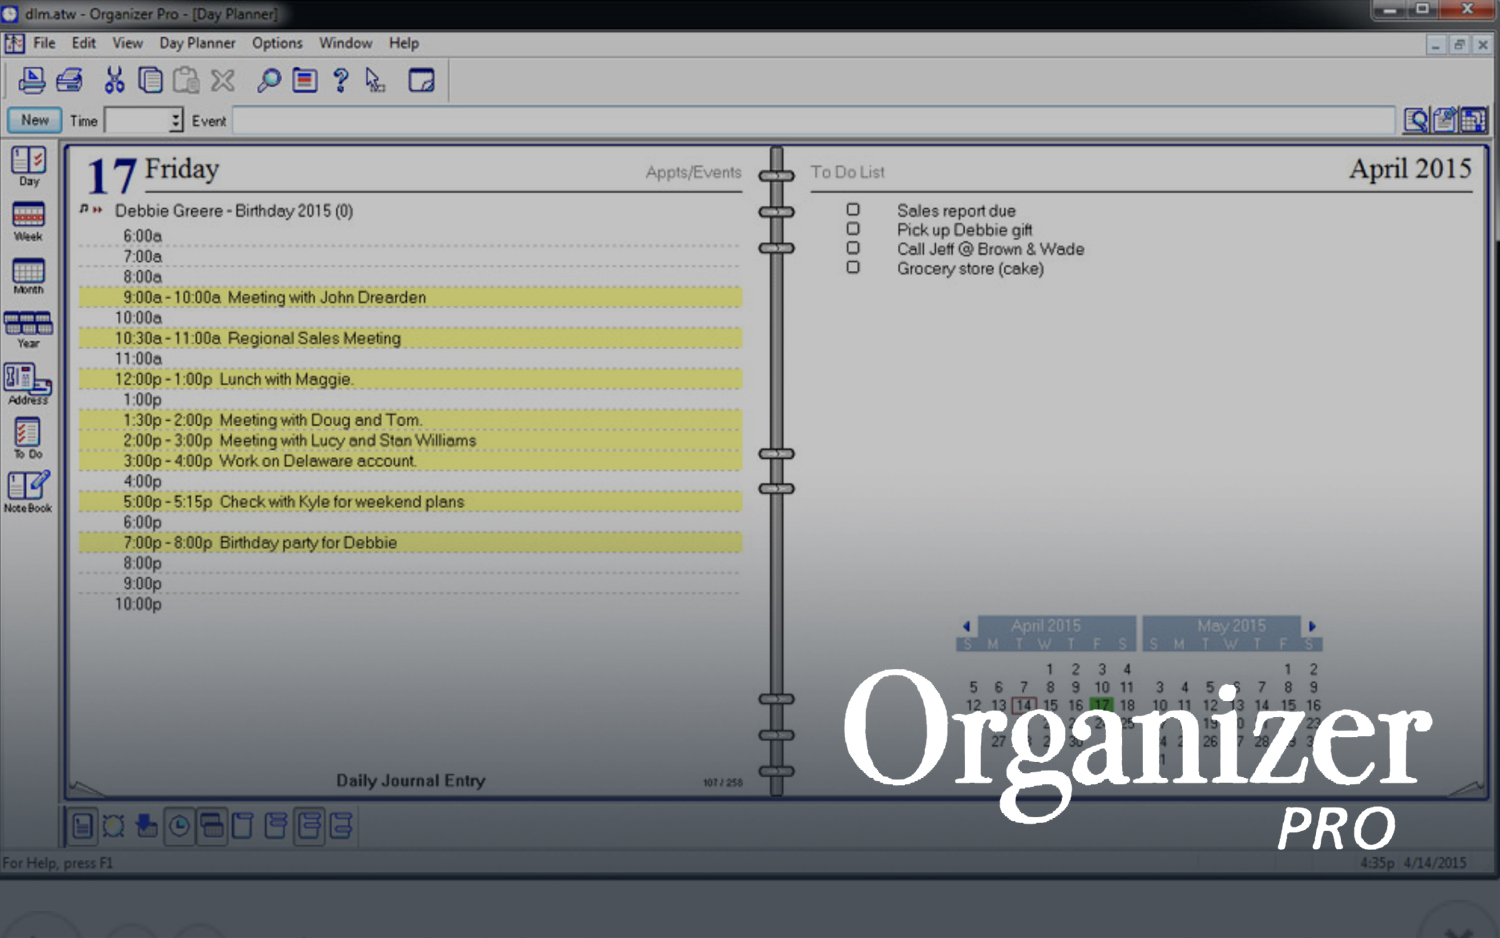 Best Organization Software 2019 - Daily Planner and